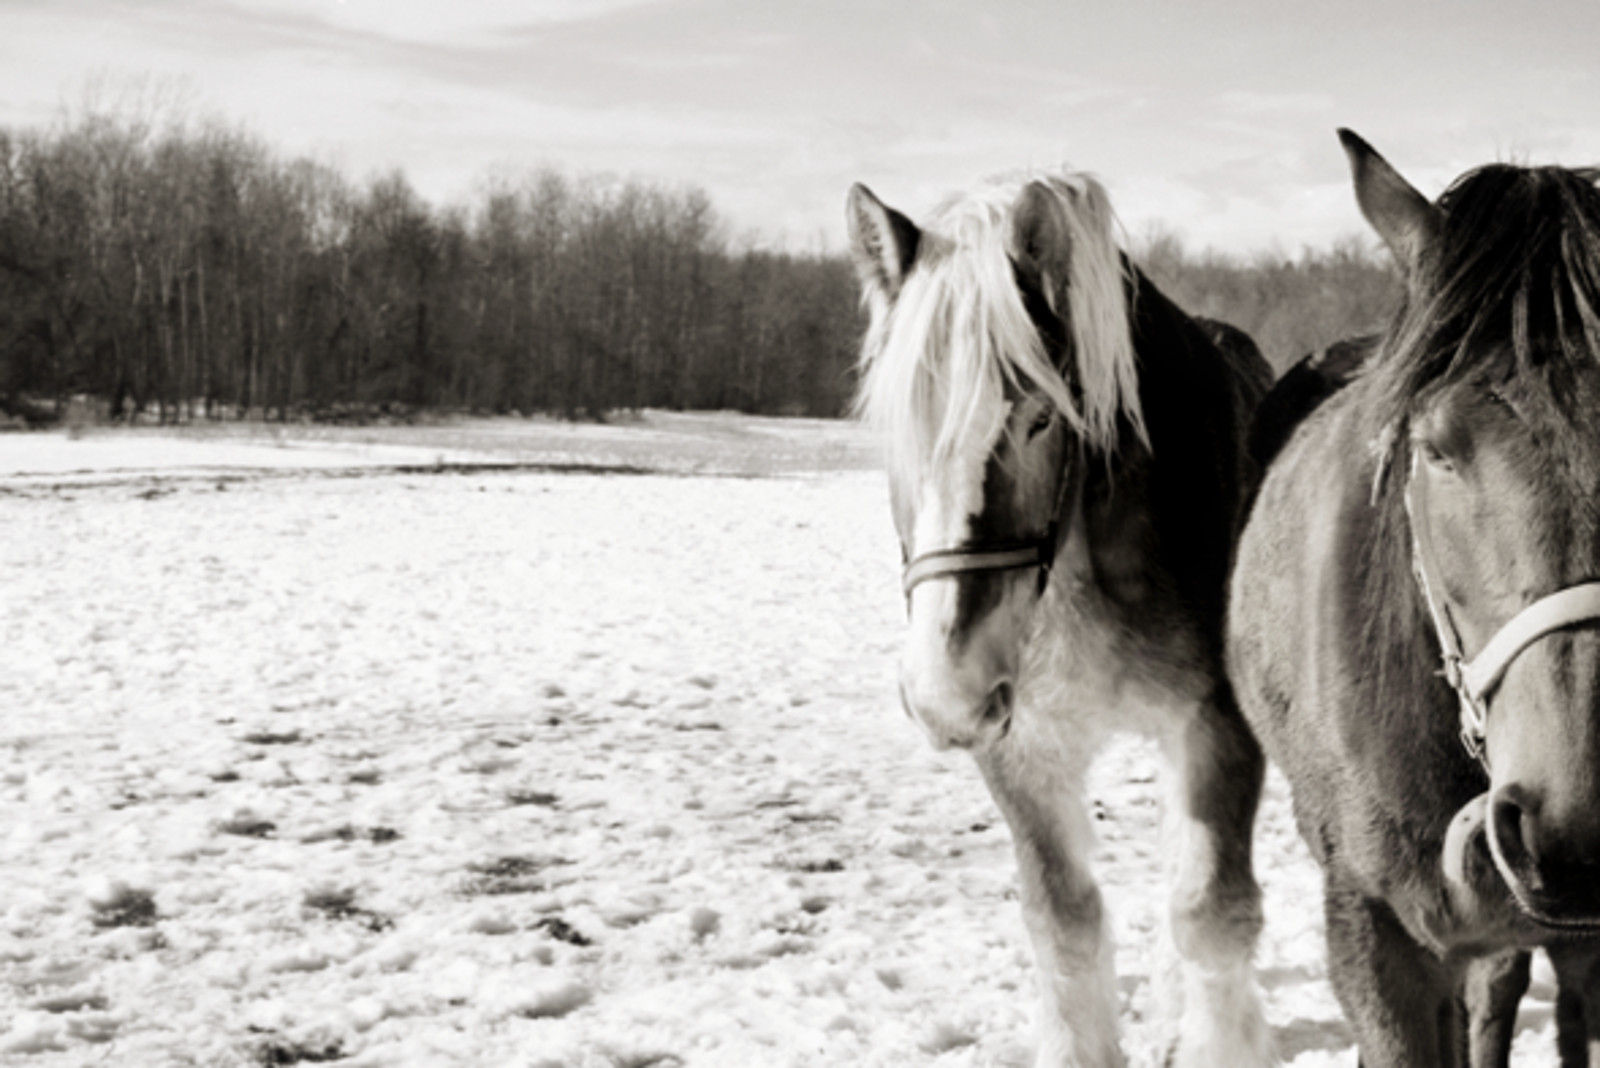 Artist Documents the Tragic Stories of Horses Across the U.S. Through Stunning Photos